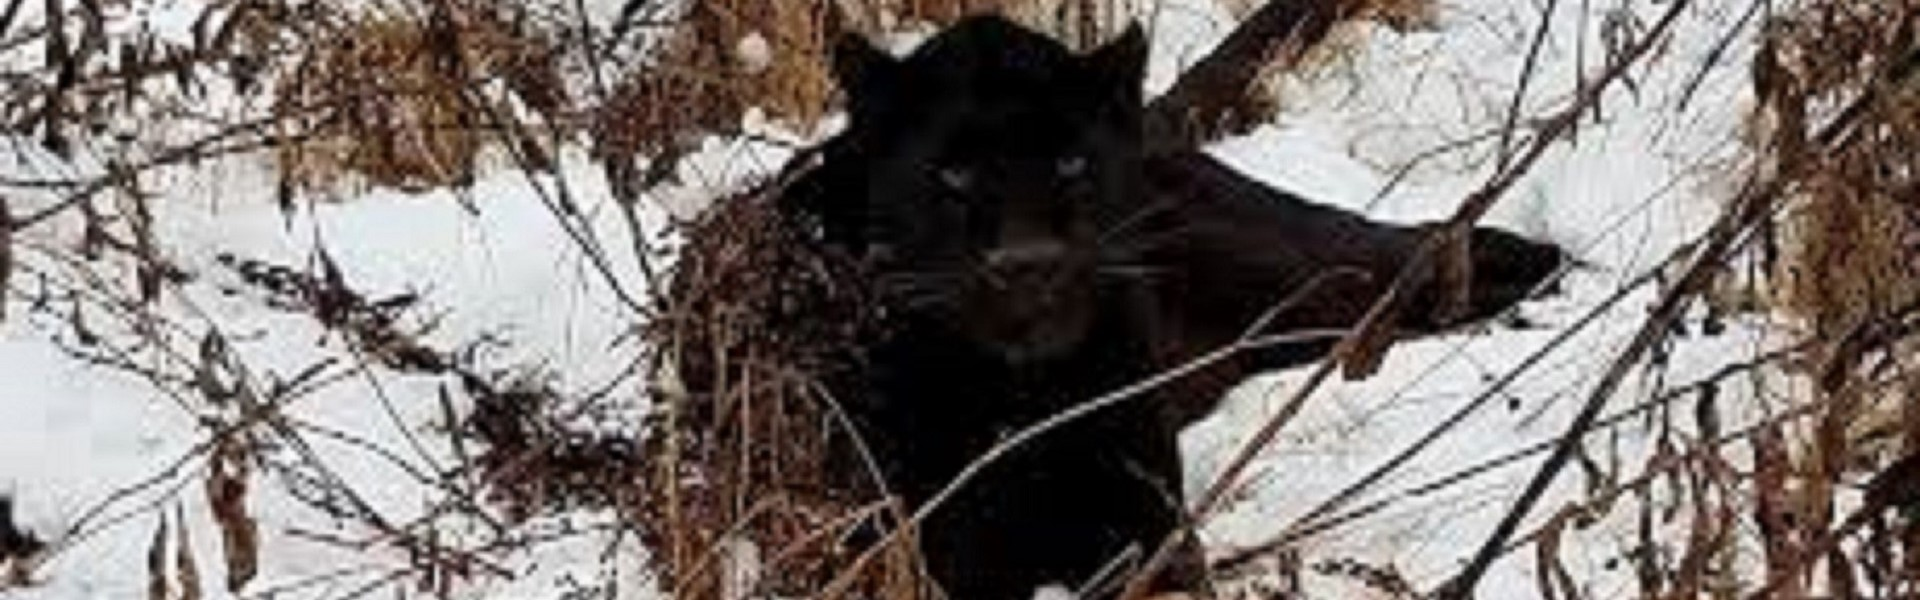 Panther in the snow